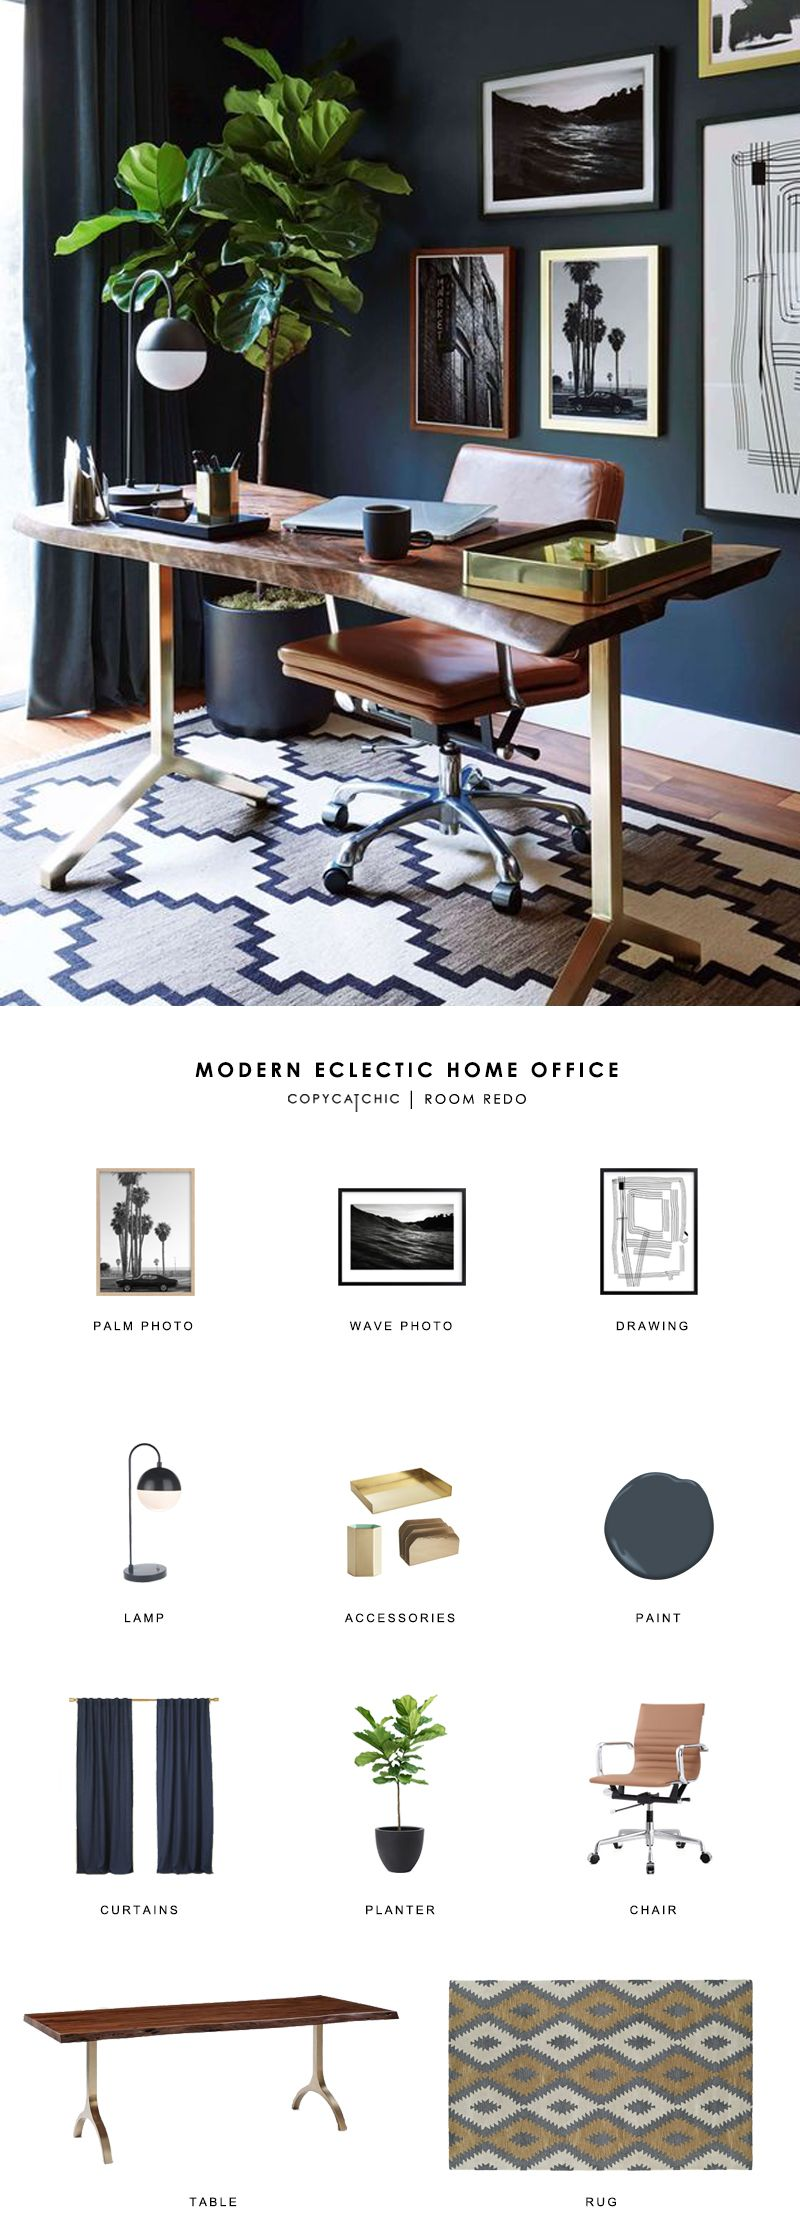 modern home office design displaying. Copy Cat Chic Room Redo | Modern Eclectic Home Office Bloglovin\u0027 Design Displaying S